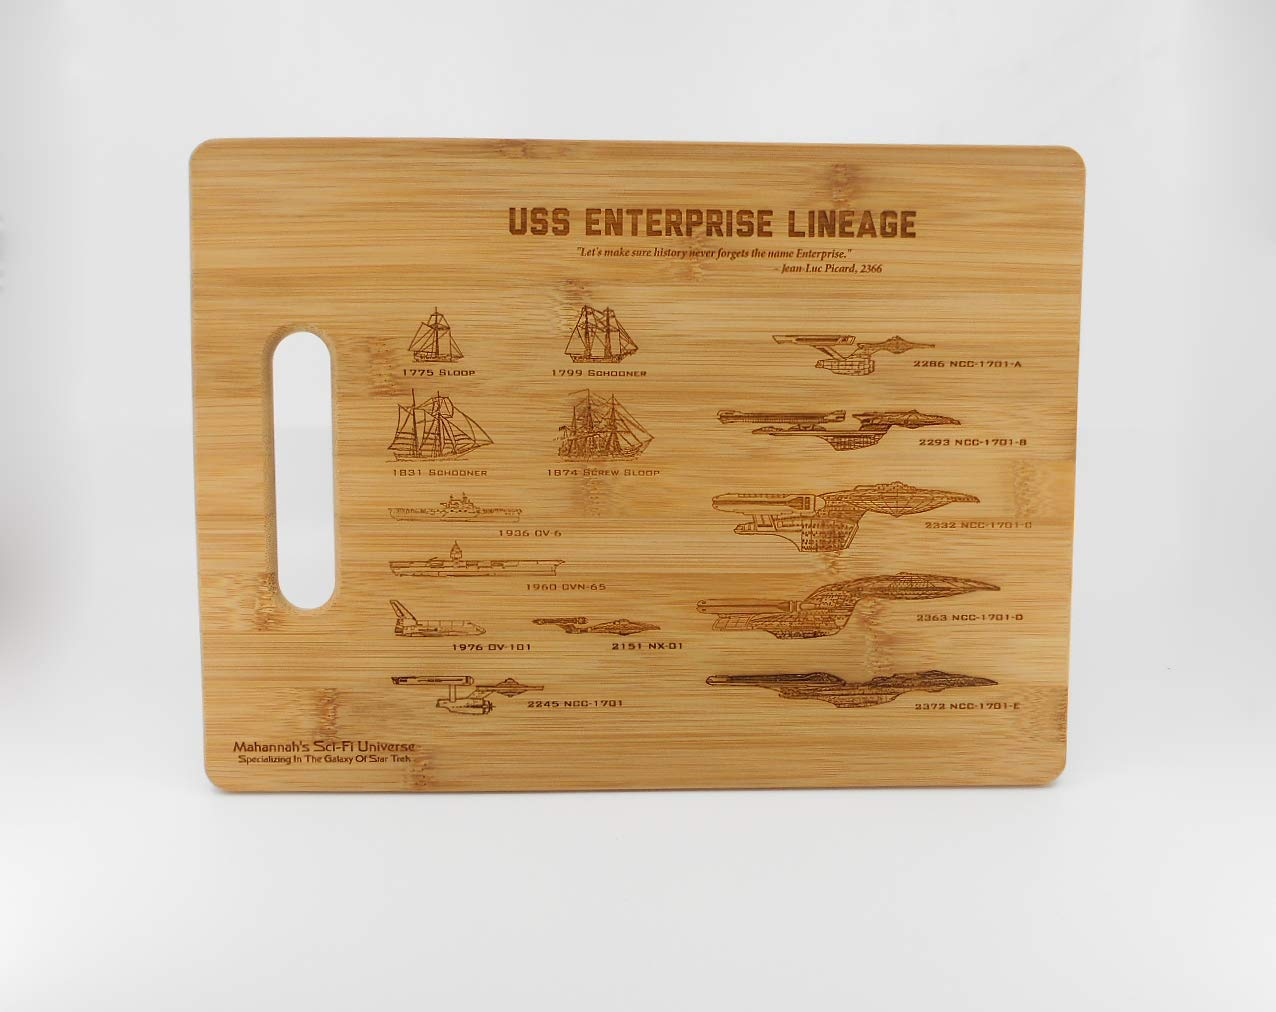 Mahannah's Sci-Fi Universe Bamboo Star Trek USS Enterprise Lineage Laser Engraved Decorative Kitchen Cutting Board